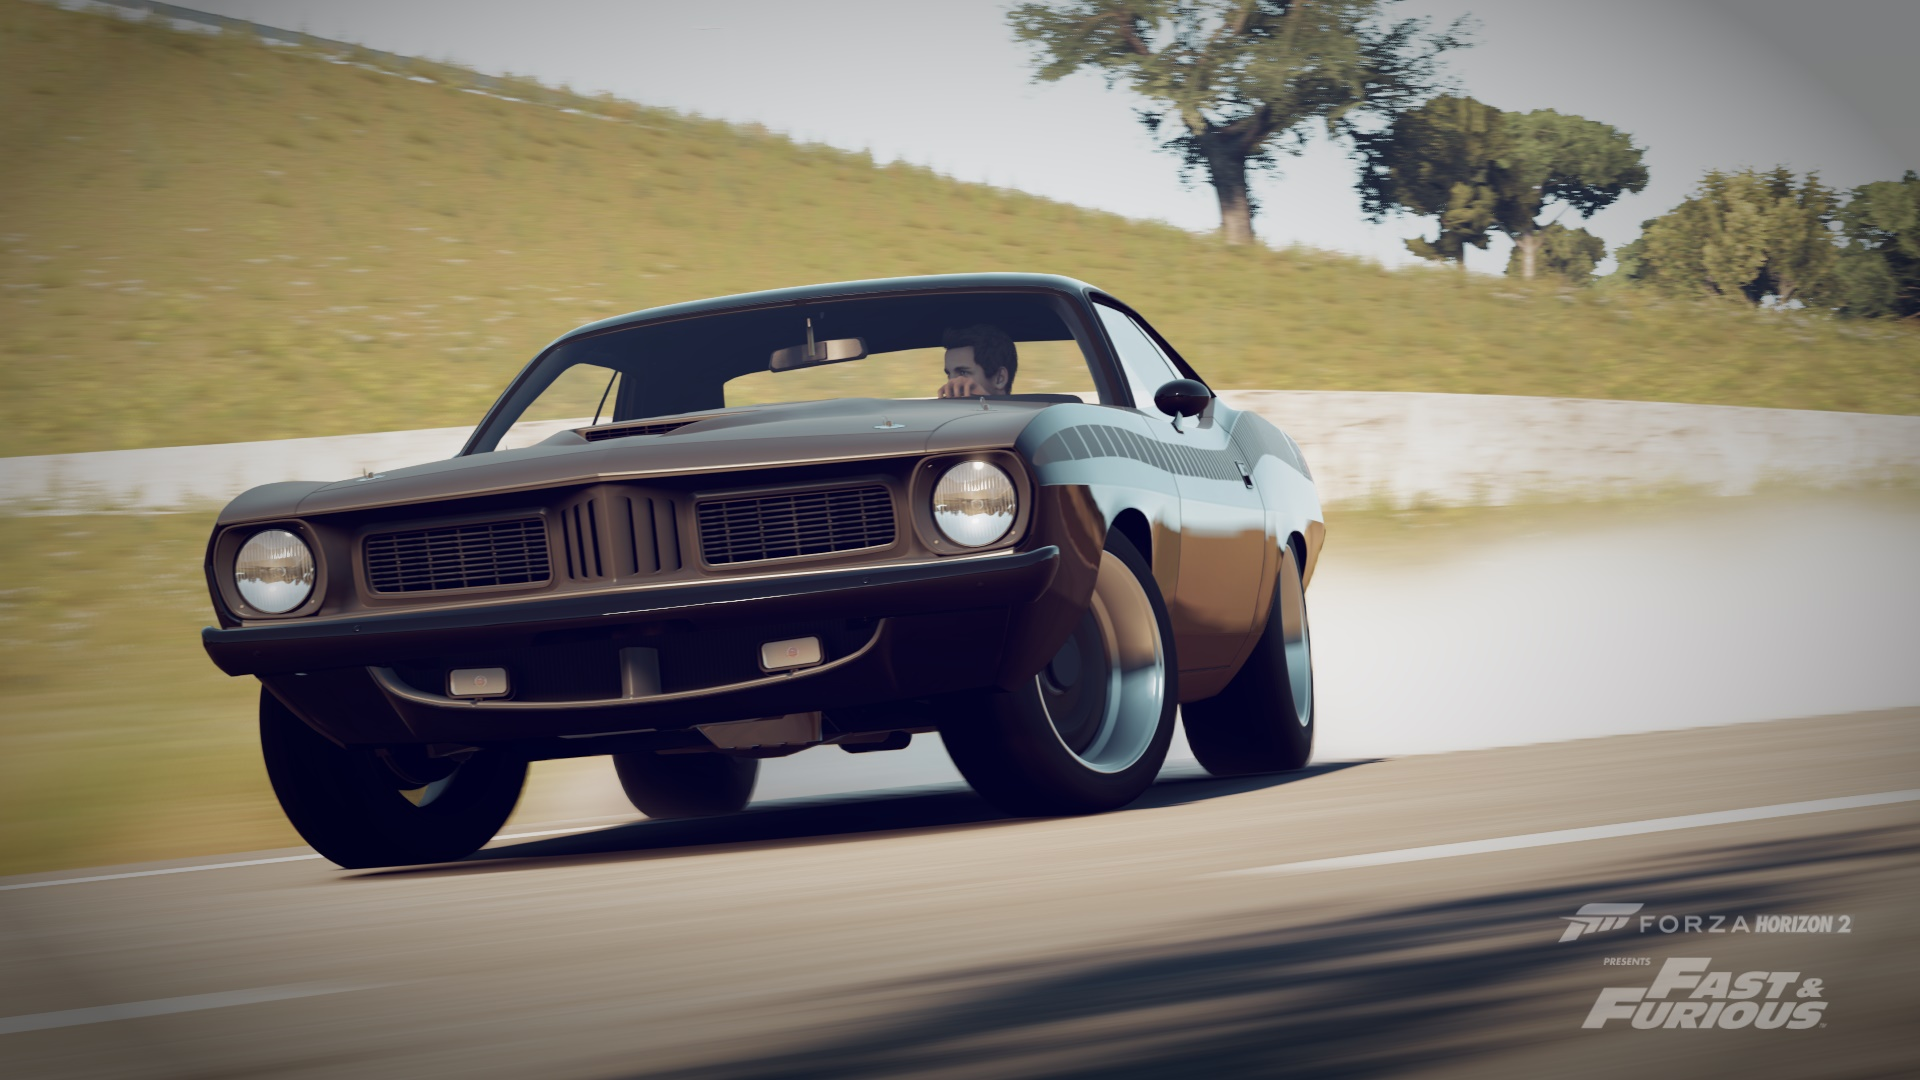 Peoples Thoughts On Forza Horizon 2 Presents The Fast And Furious For 10 Bucks It Was Pretty Decent